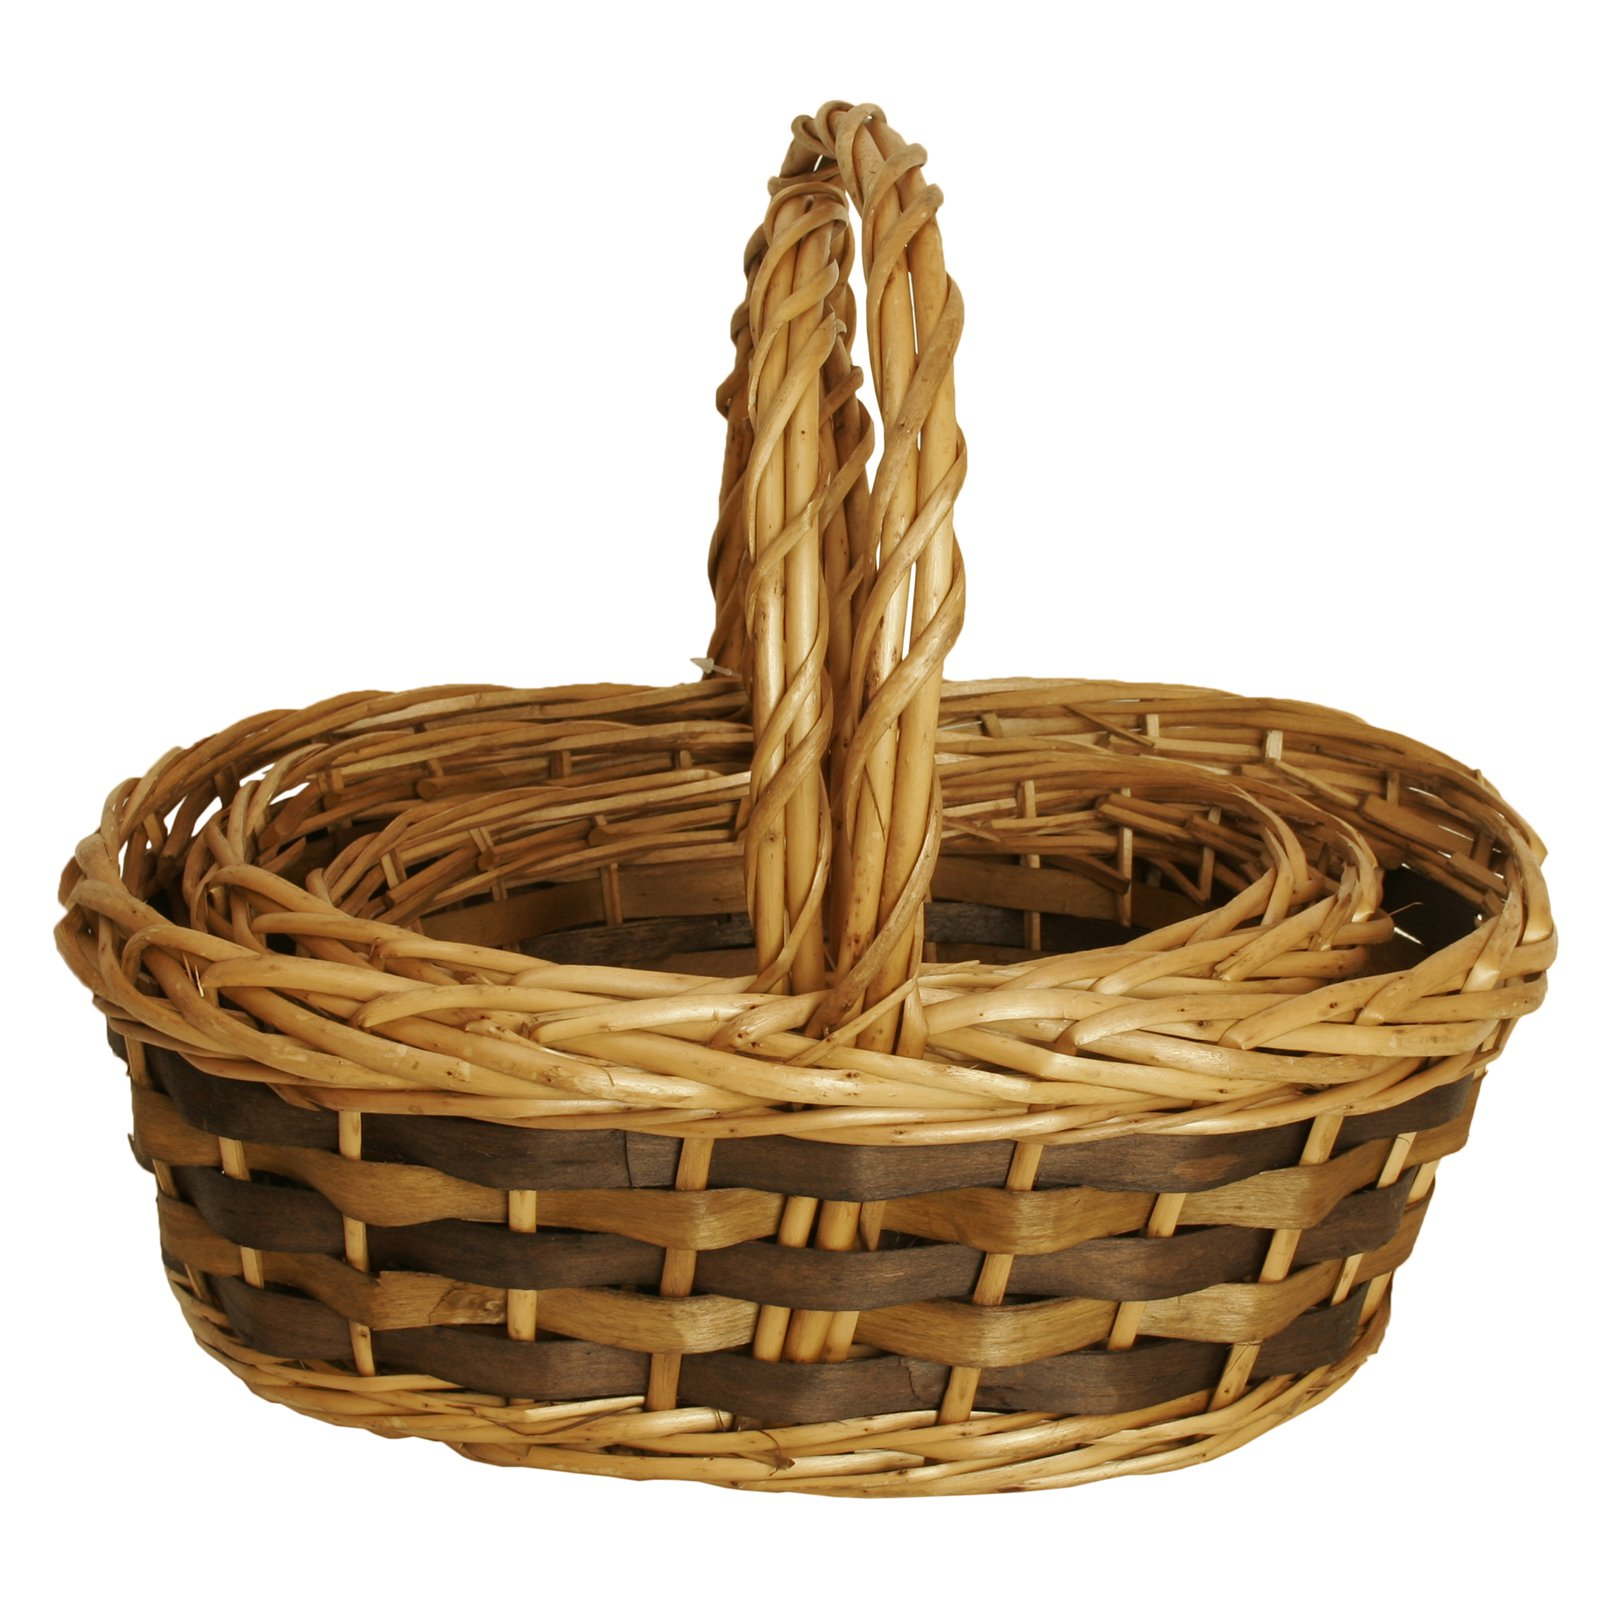 Wald Import Tuscana Decorative Basket with Wood Handle - Set of 3